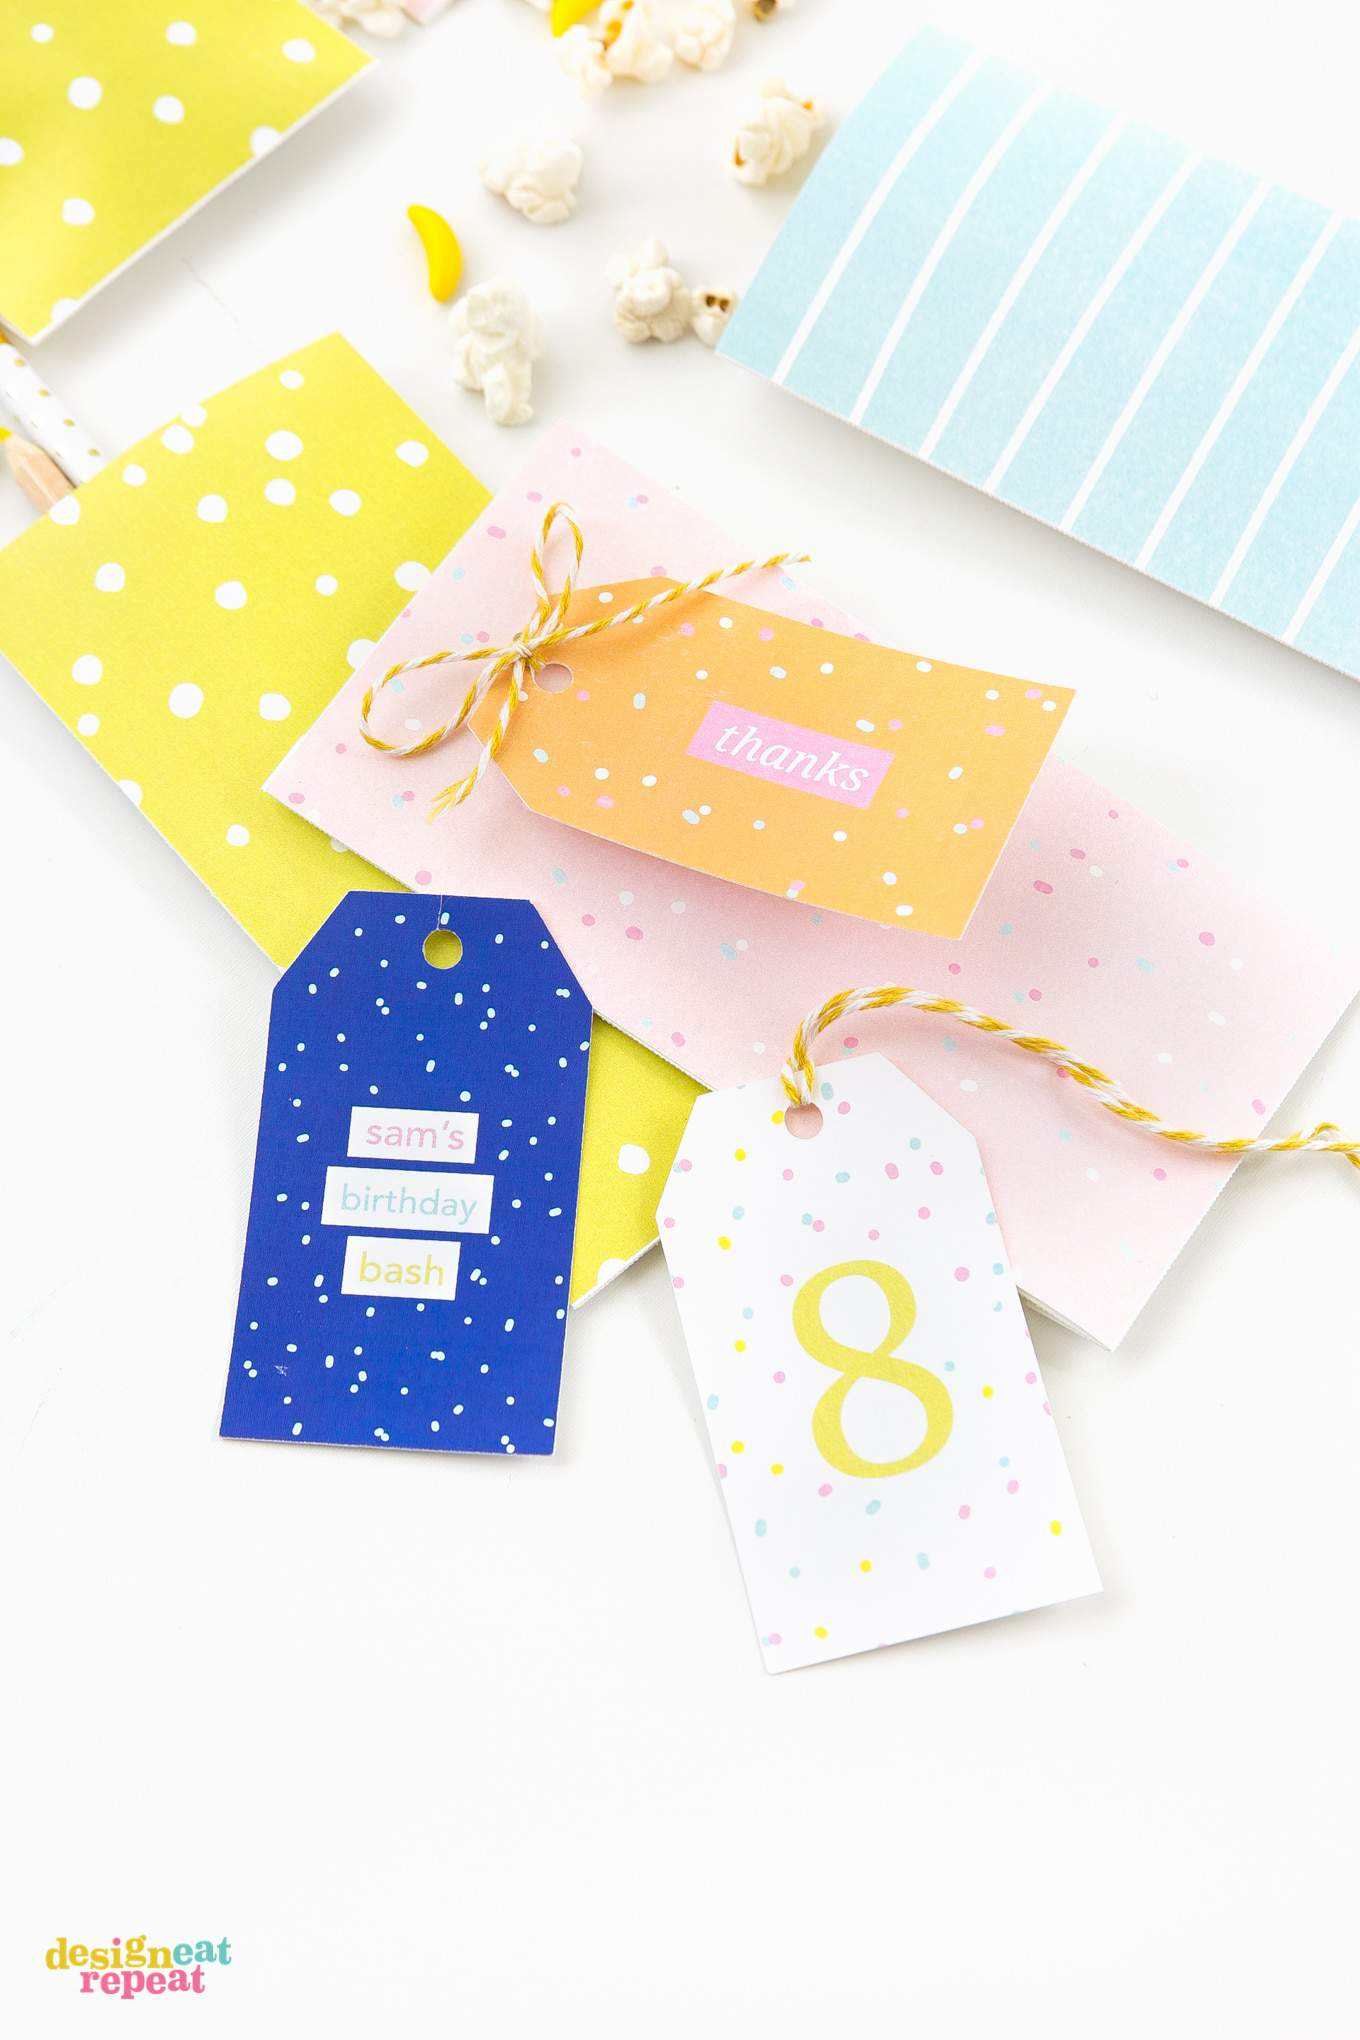 Download These Fun Colorful Printable Birthday Gift Tags And Attach Them To Treat Bags For